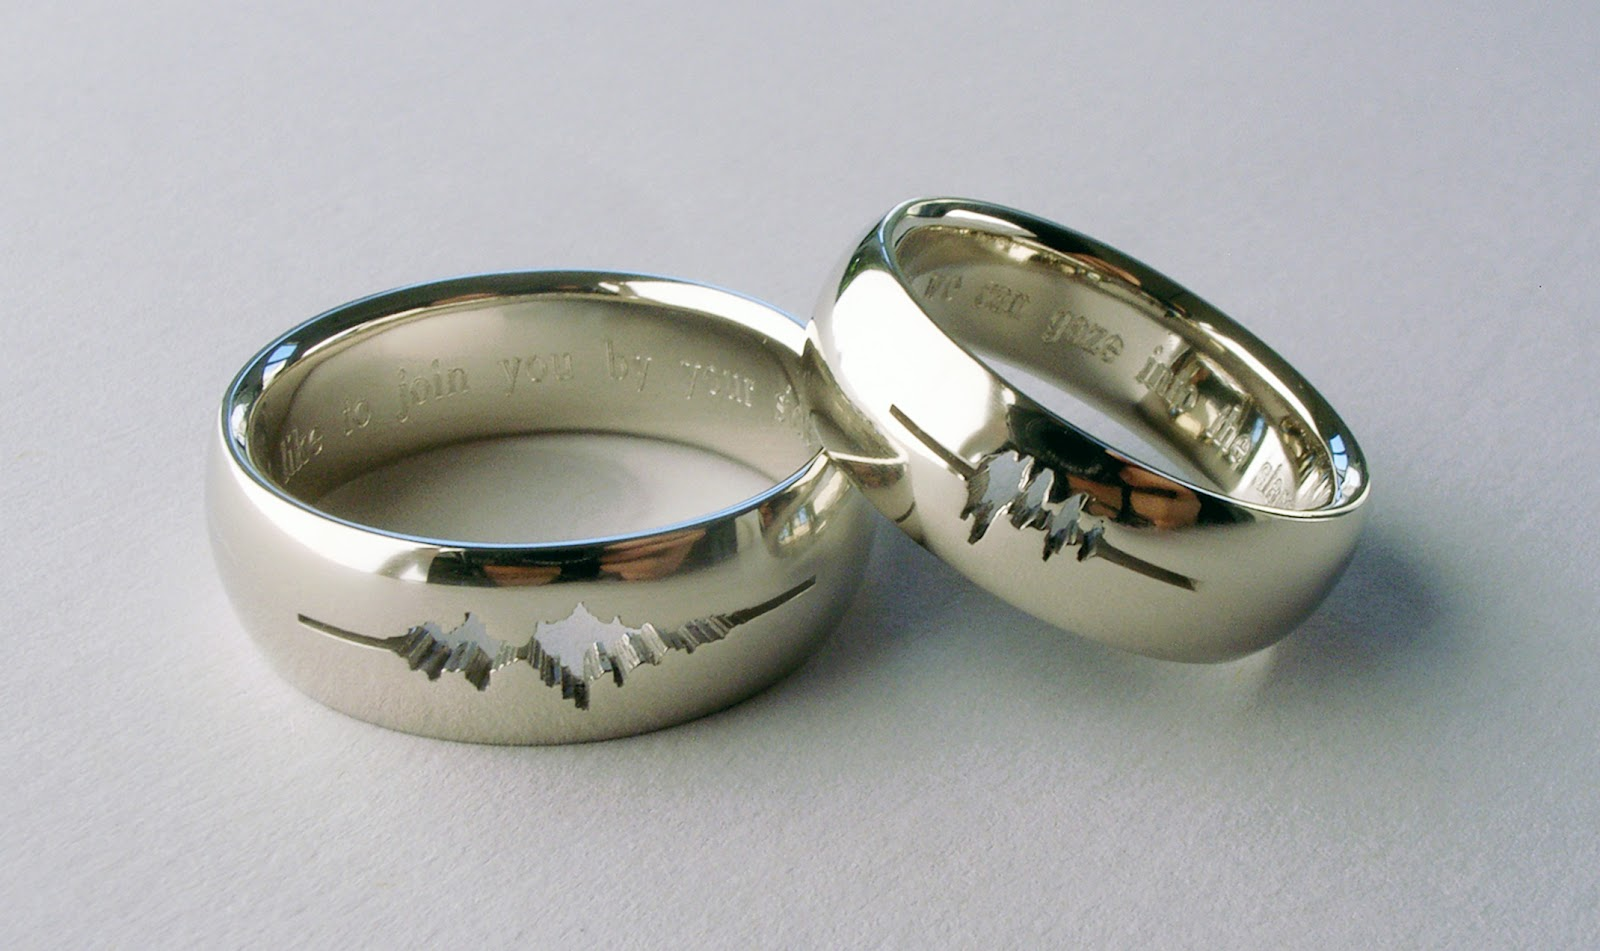 Fascinating new wedding rings